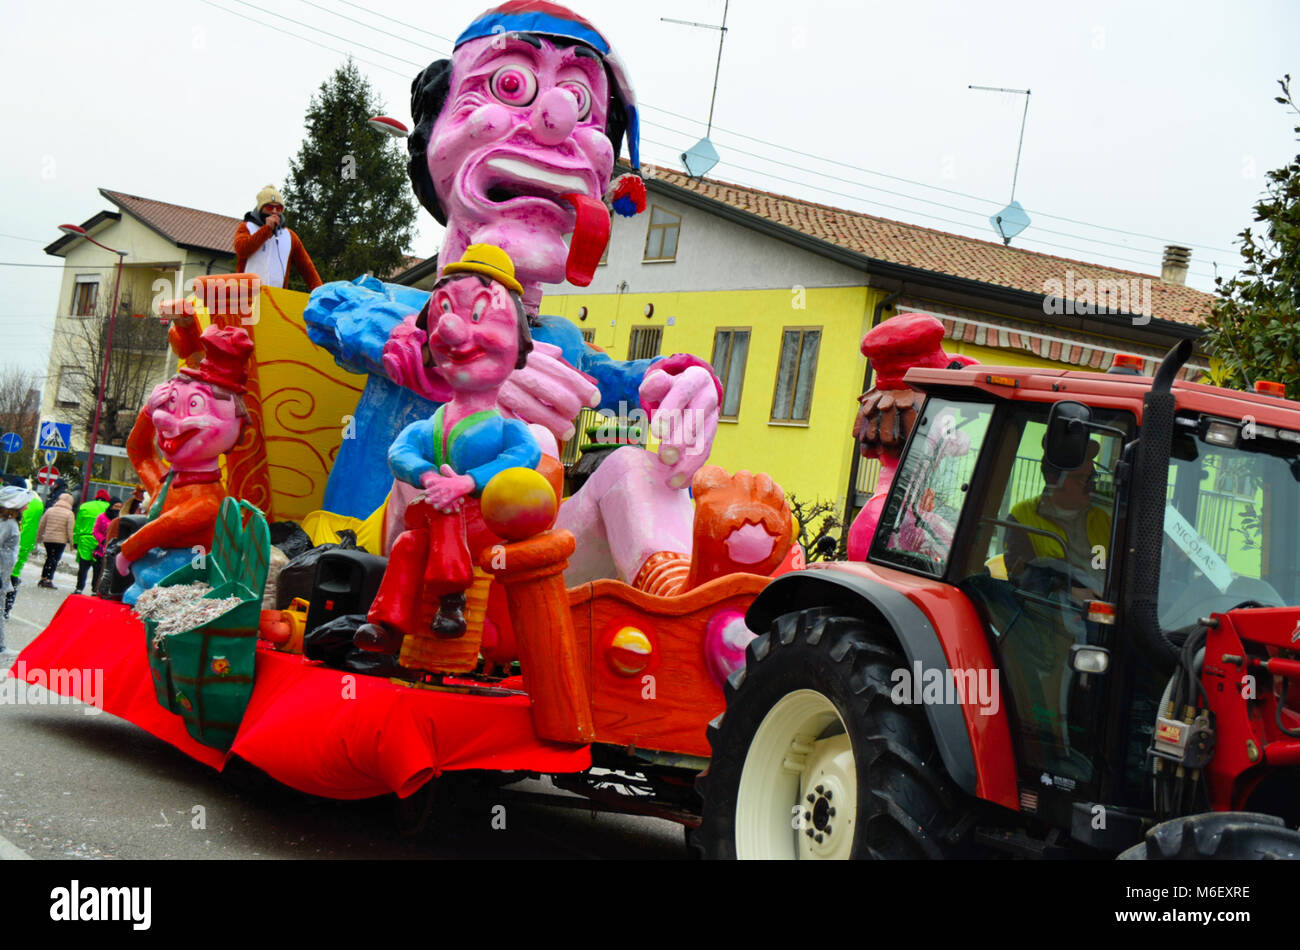 Cadoneghe, Veneto, Italy. The carnival of Cadoneghe is famous throughout the region for its allegorical floats. - Stock Image